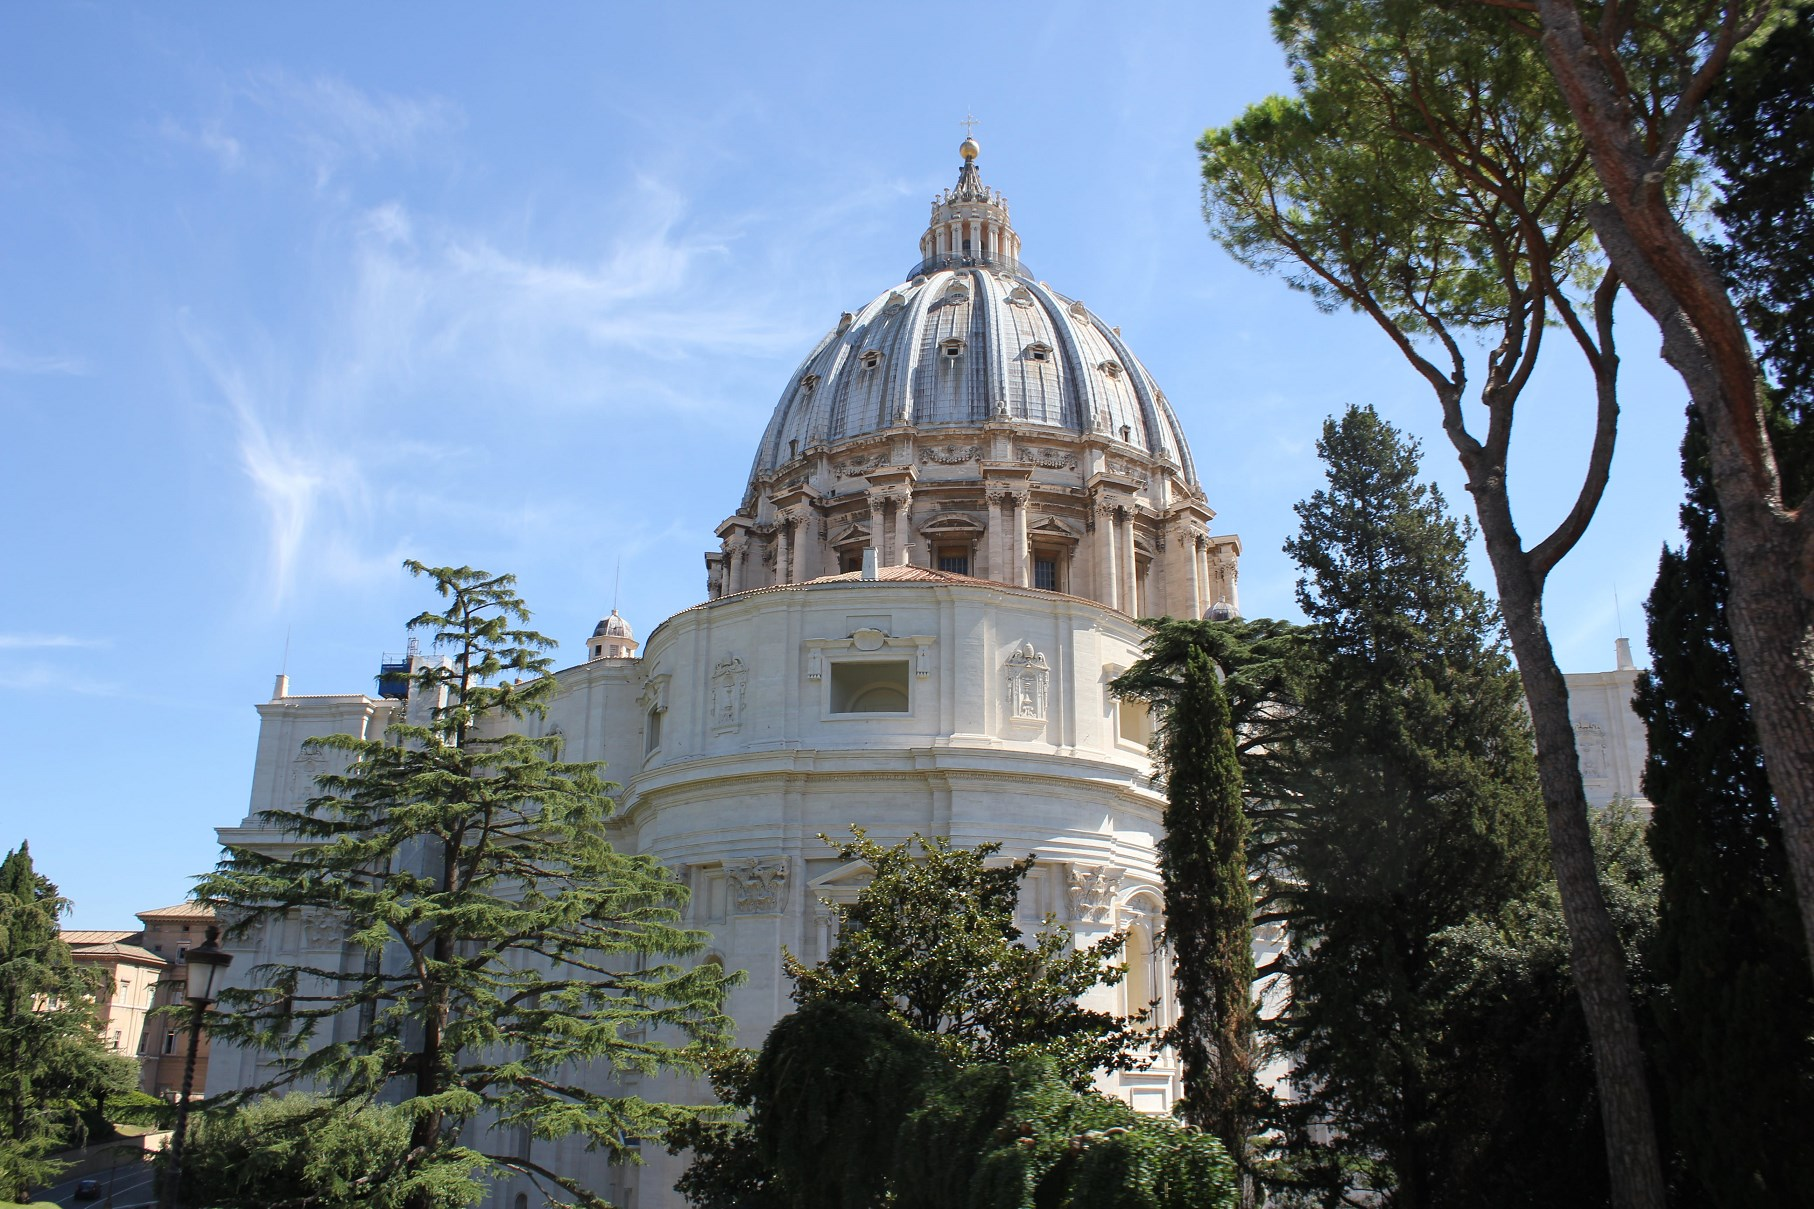 vatican gardens tour saint peters basilica